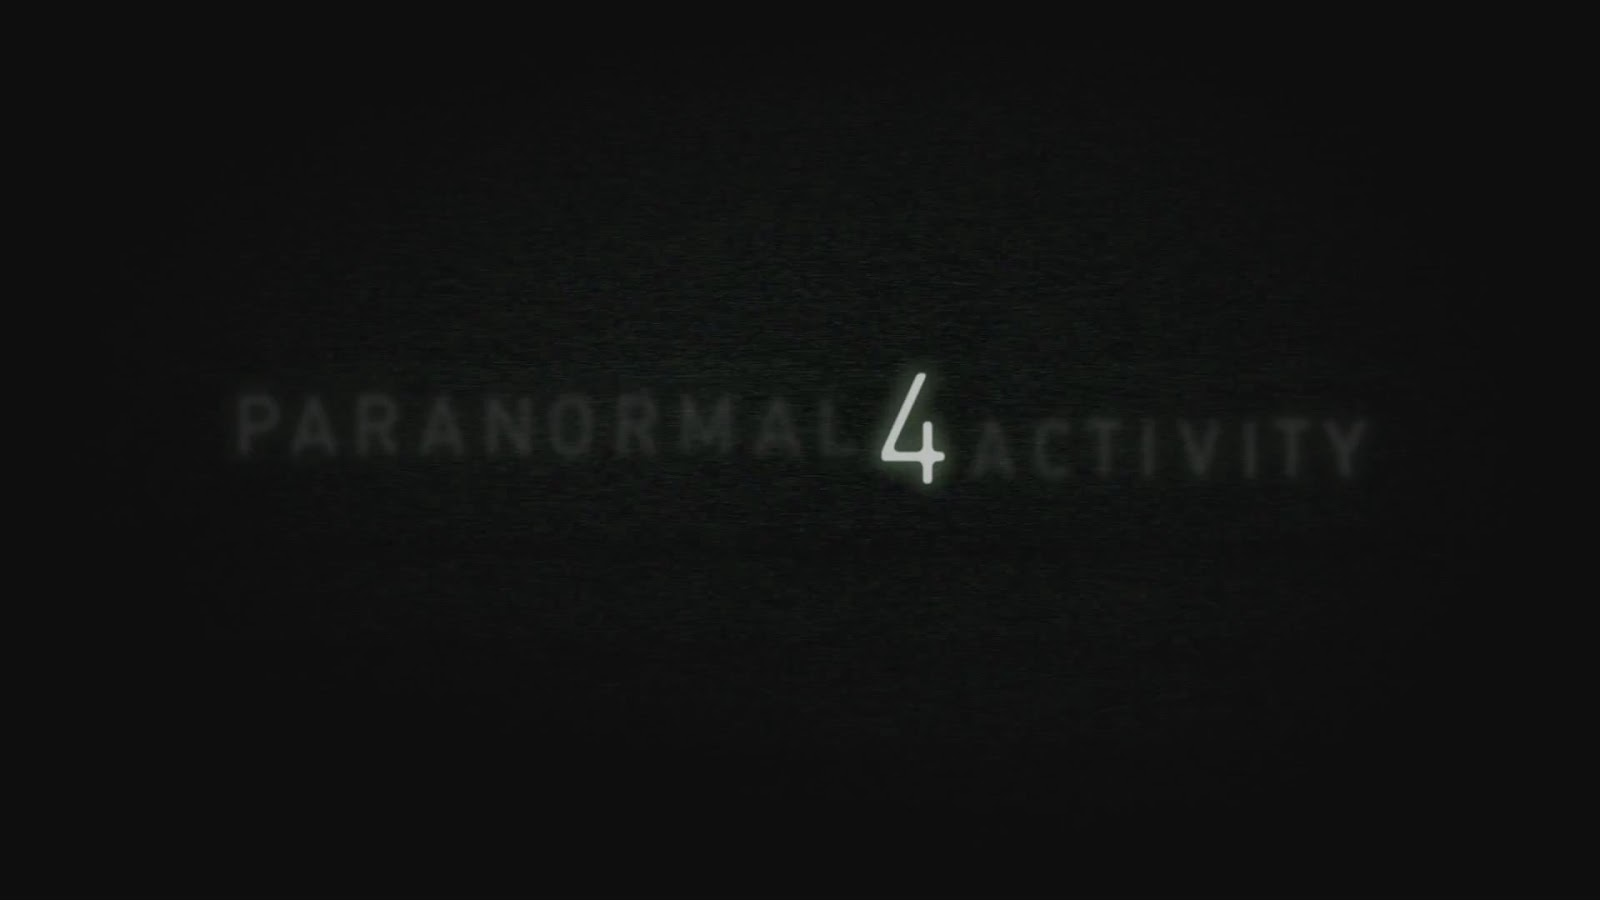 Paranormal+Activity+4+hd+wallpapers+%281%29 Paranormal Activity 4 Fragmanı İzle